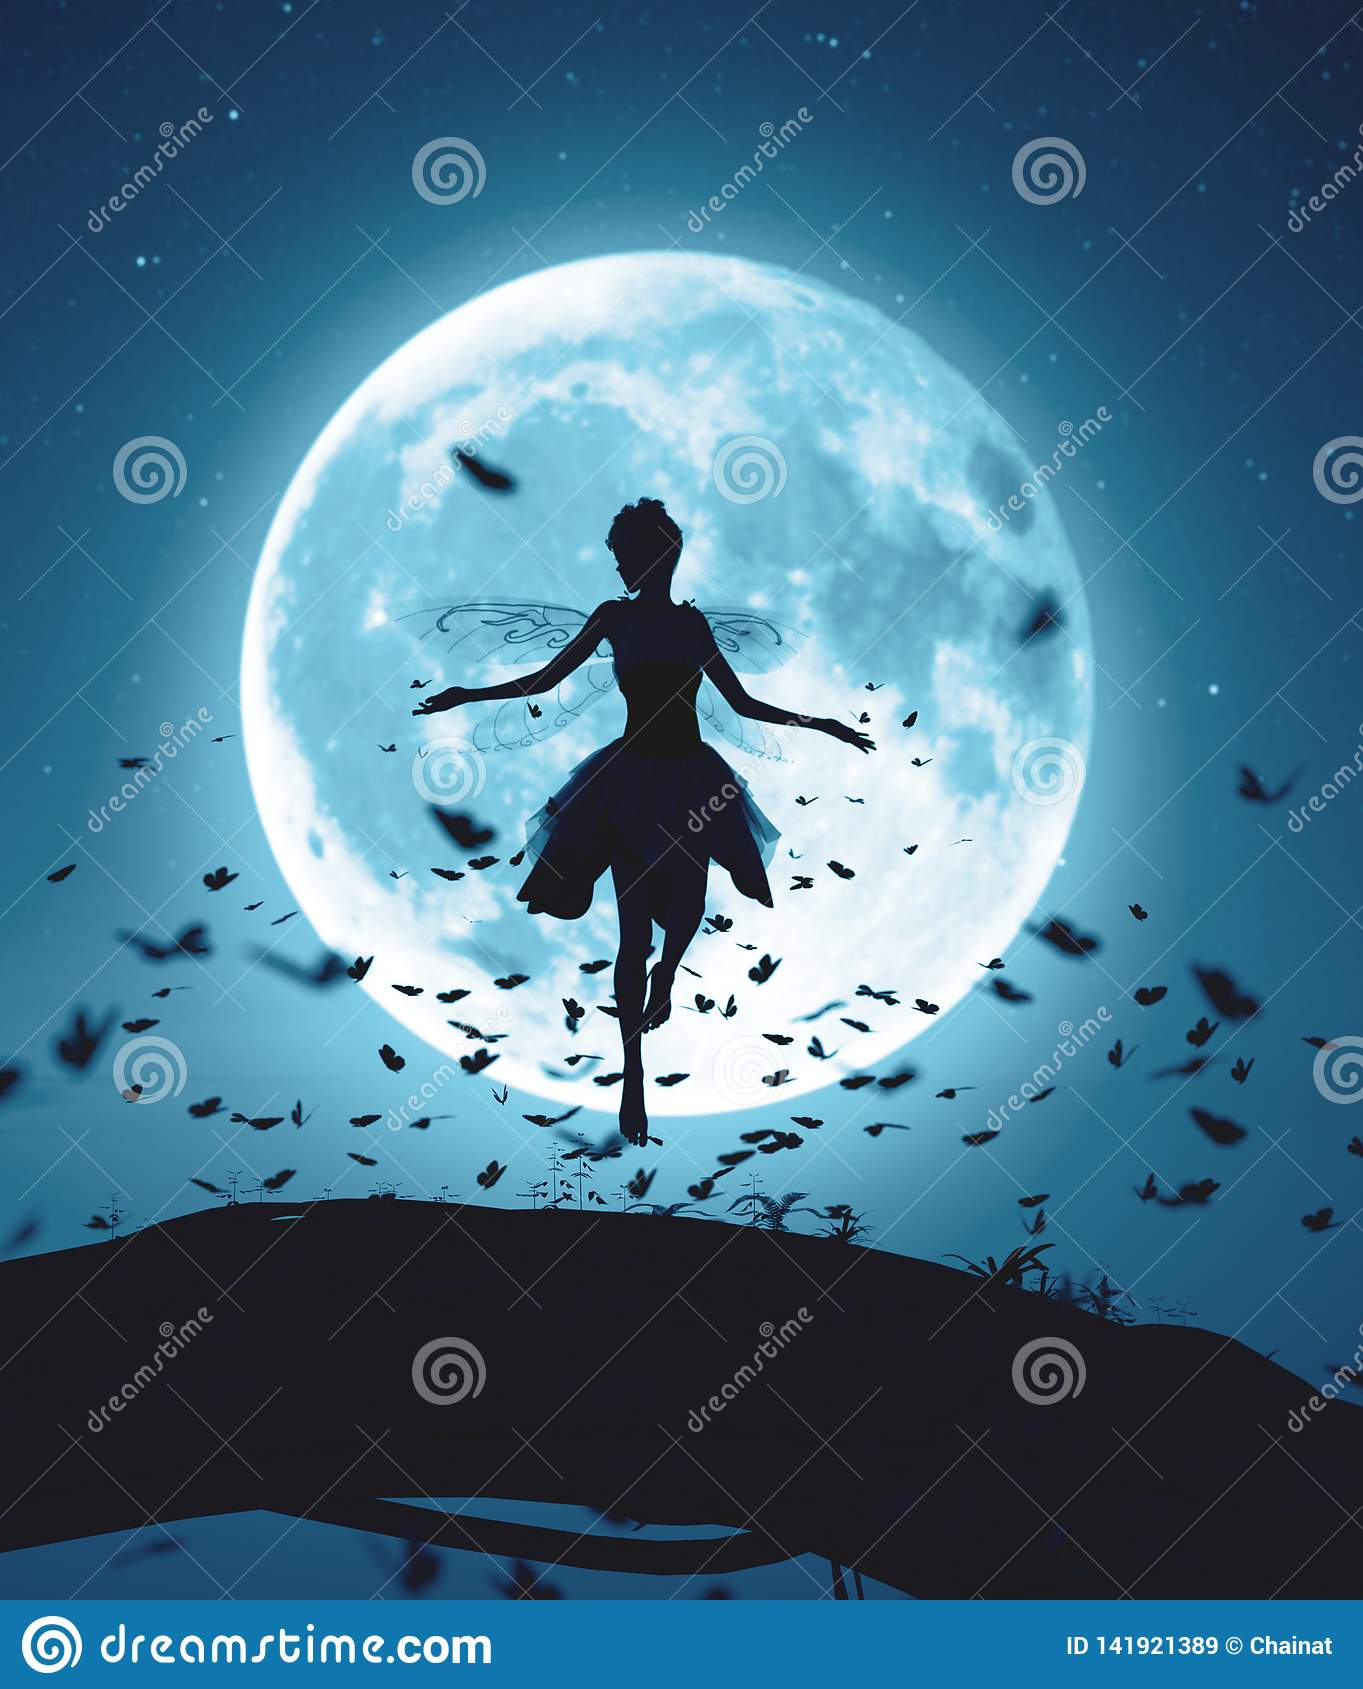 Fairy flying in a magical night surrounded by flock butterflies in moonlight